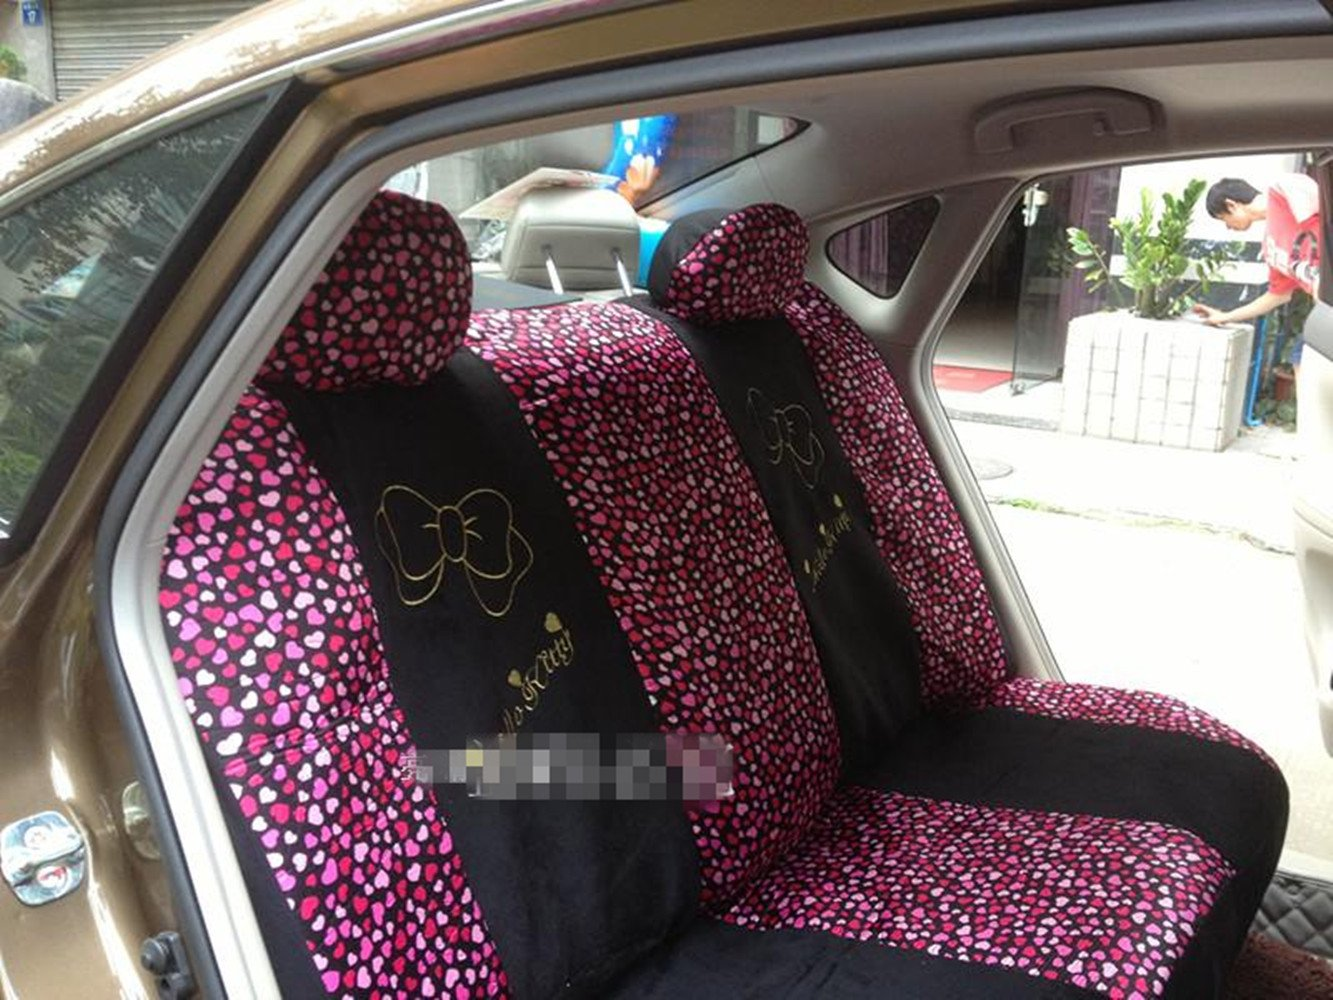 Black/Peach Bow Front Rear Car Seat Cushion Cover Black&Gold 18pcs Full Set Needlework by GH8 (Image #5)